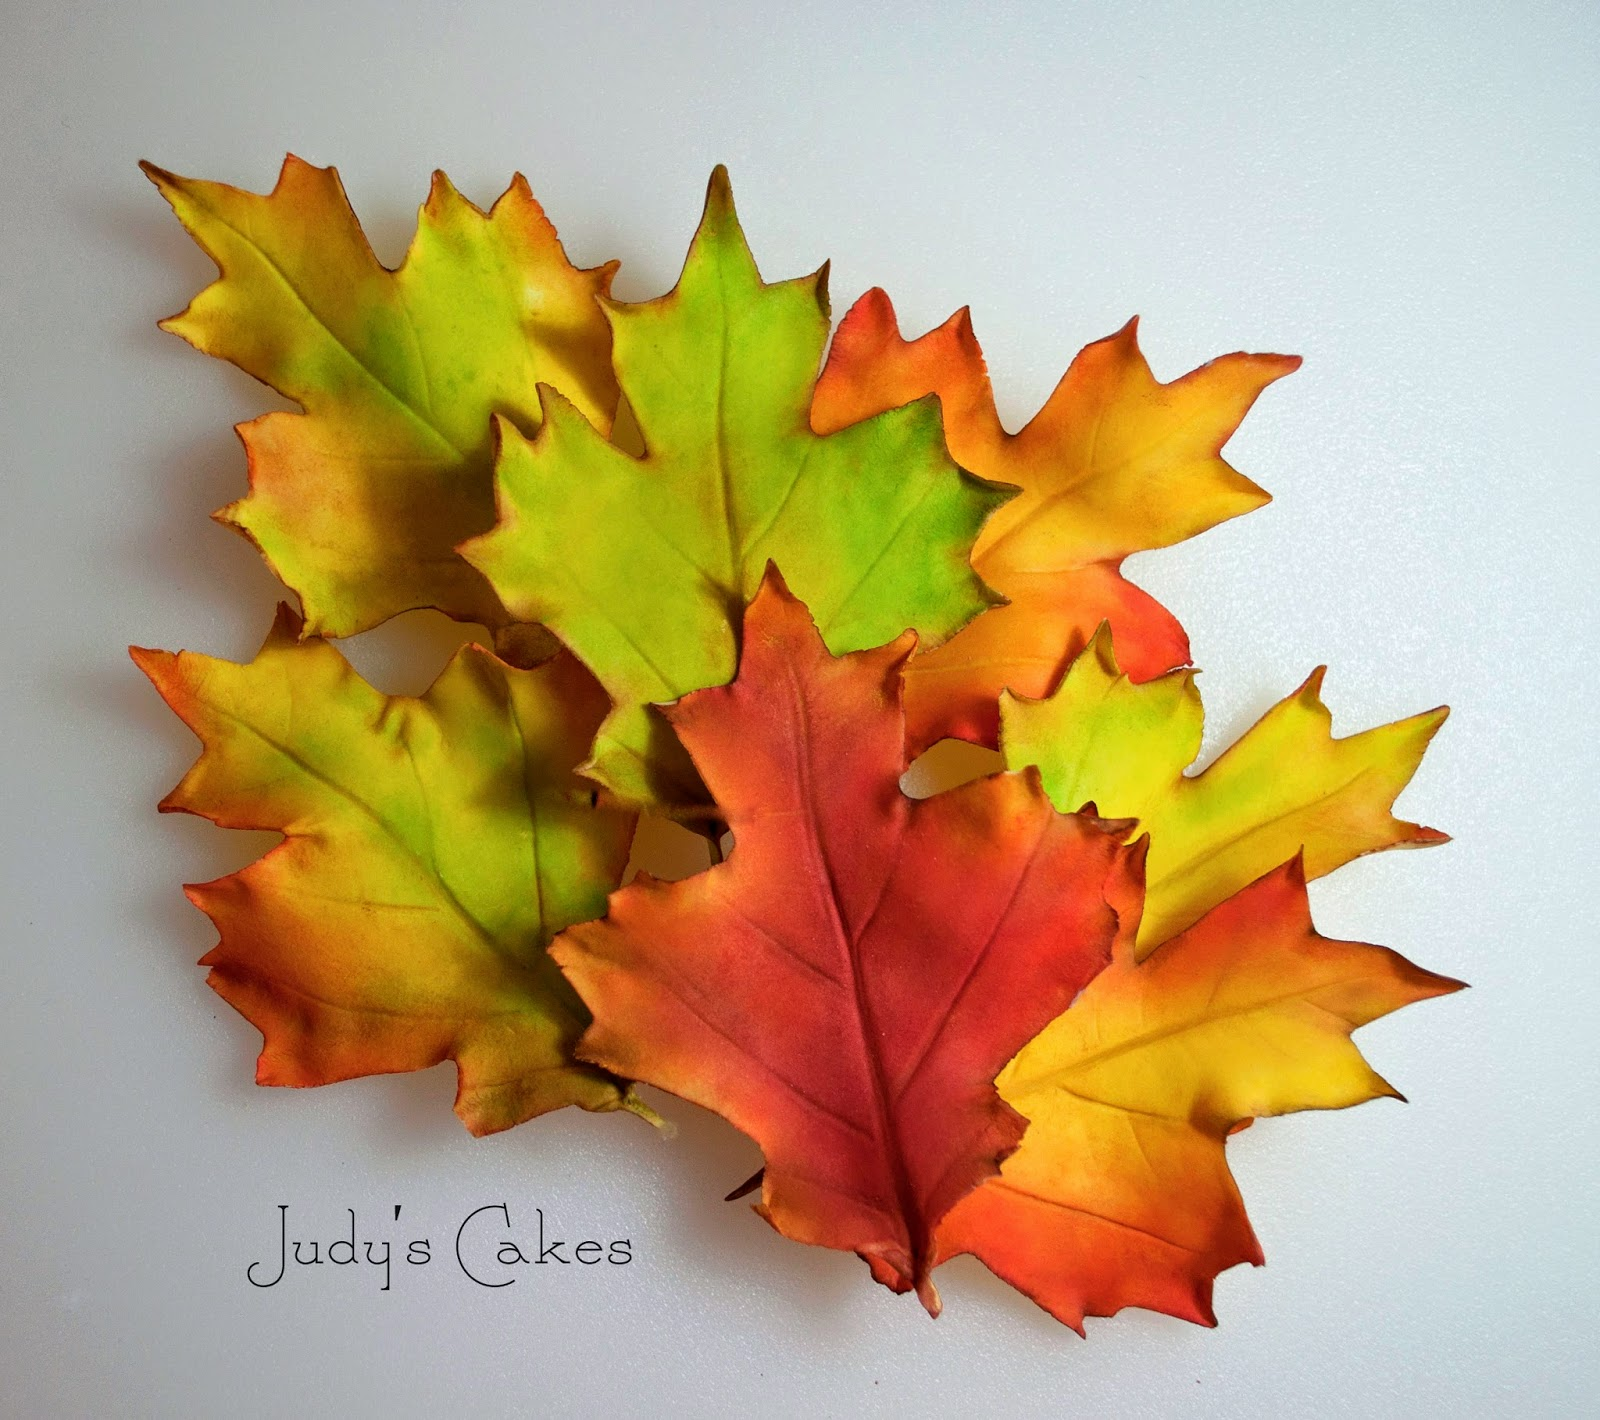 Judy s Cakes: How to Make Fall Leaves - Part #2